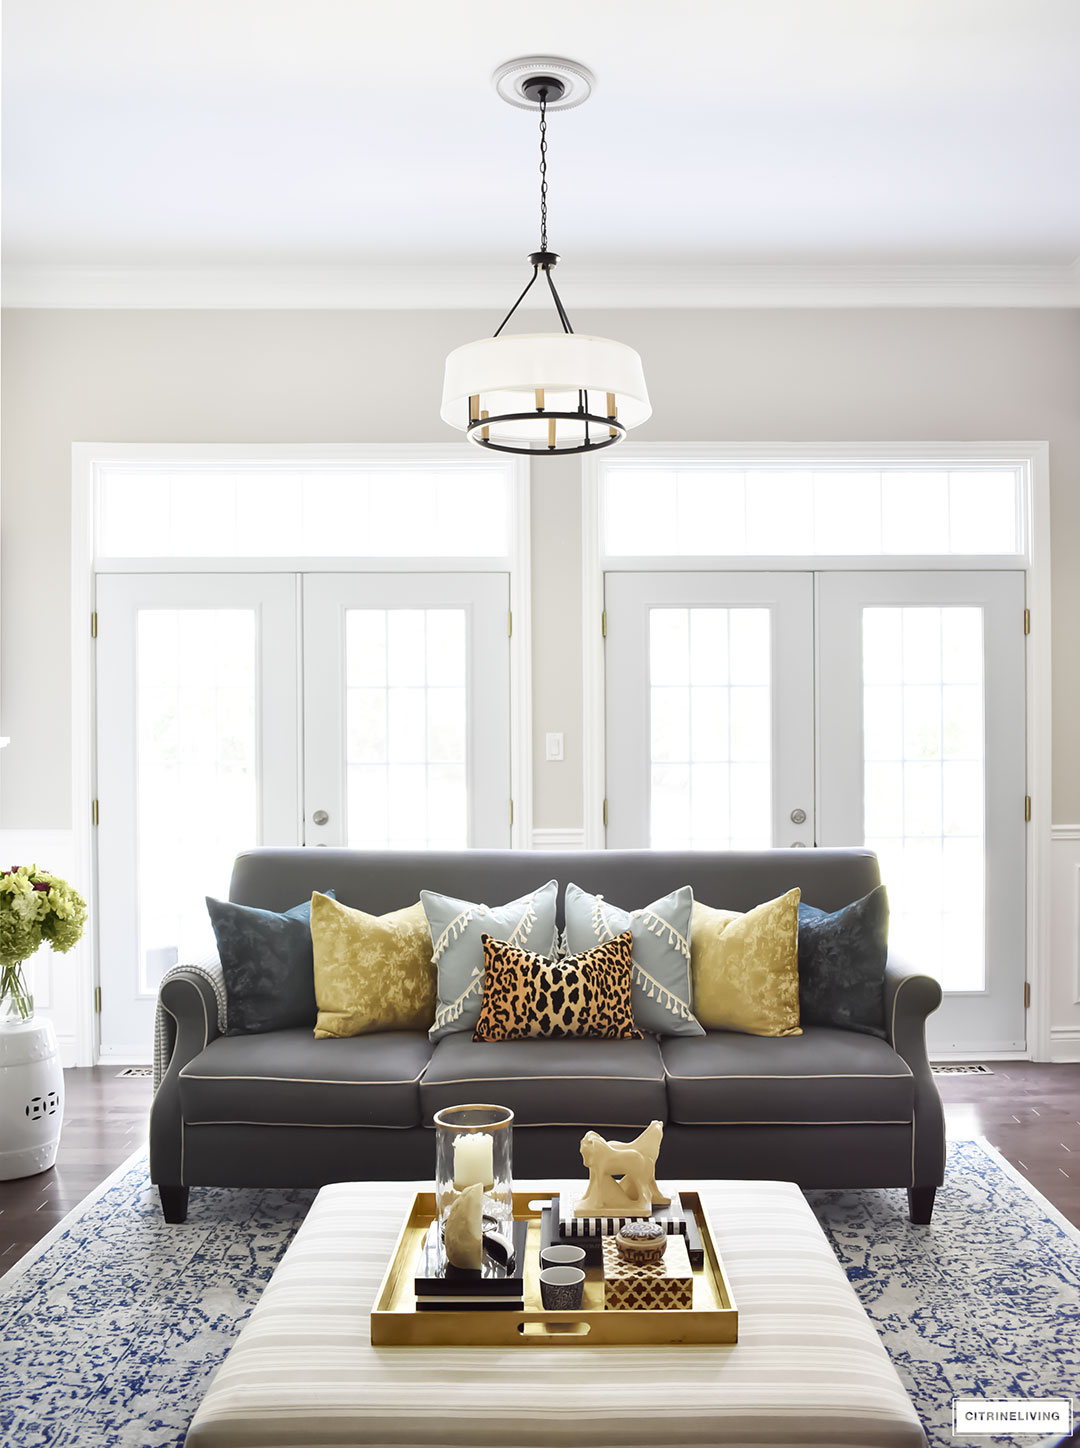 Fall Home Tour with navy and gold velvet pillows and accents. Leopard pillow. Drum shade chandelier.